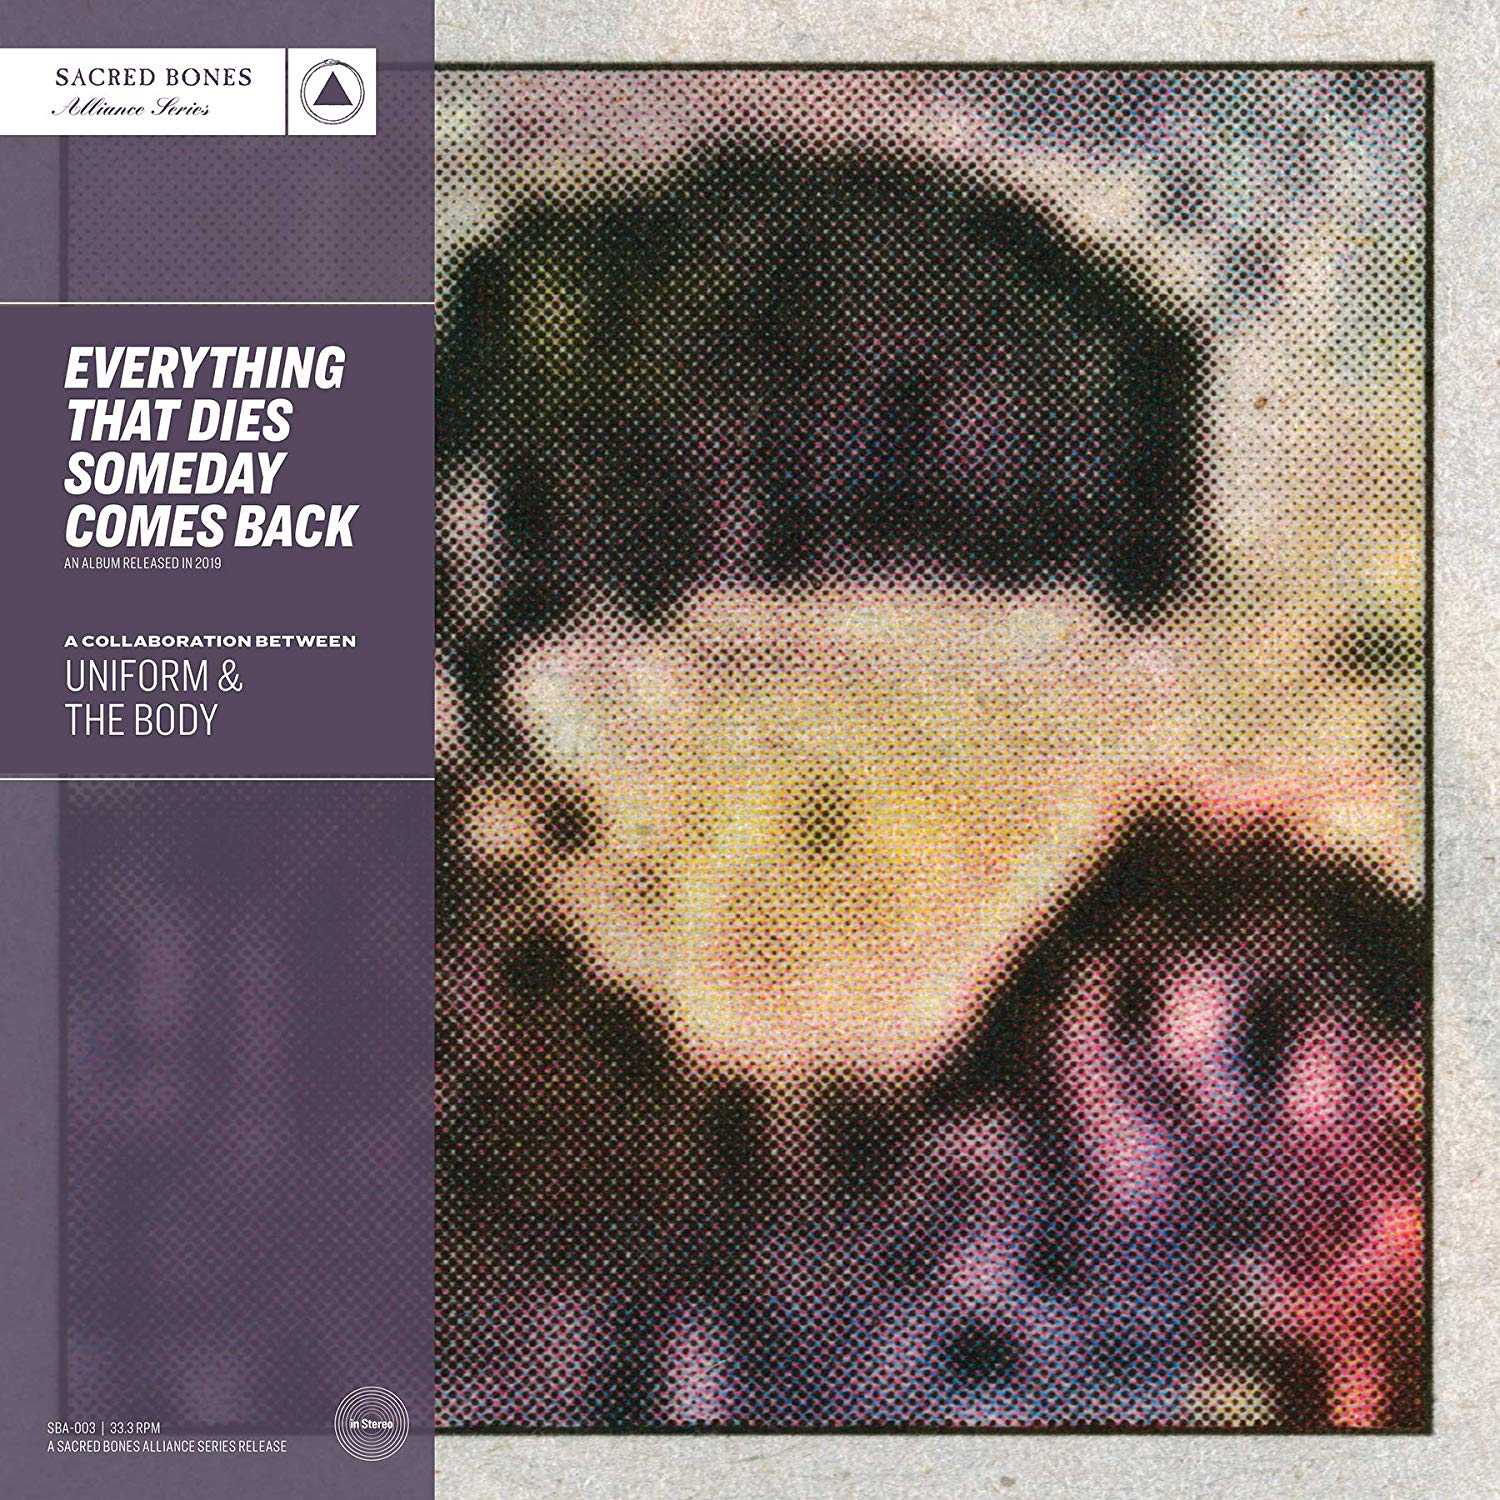 Uniform & The Body - Everything That Dies Someday Comes Back [Purple LP]